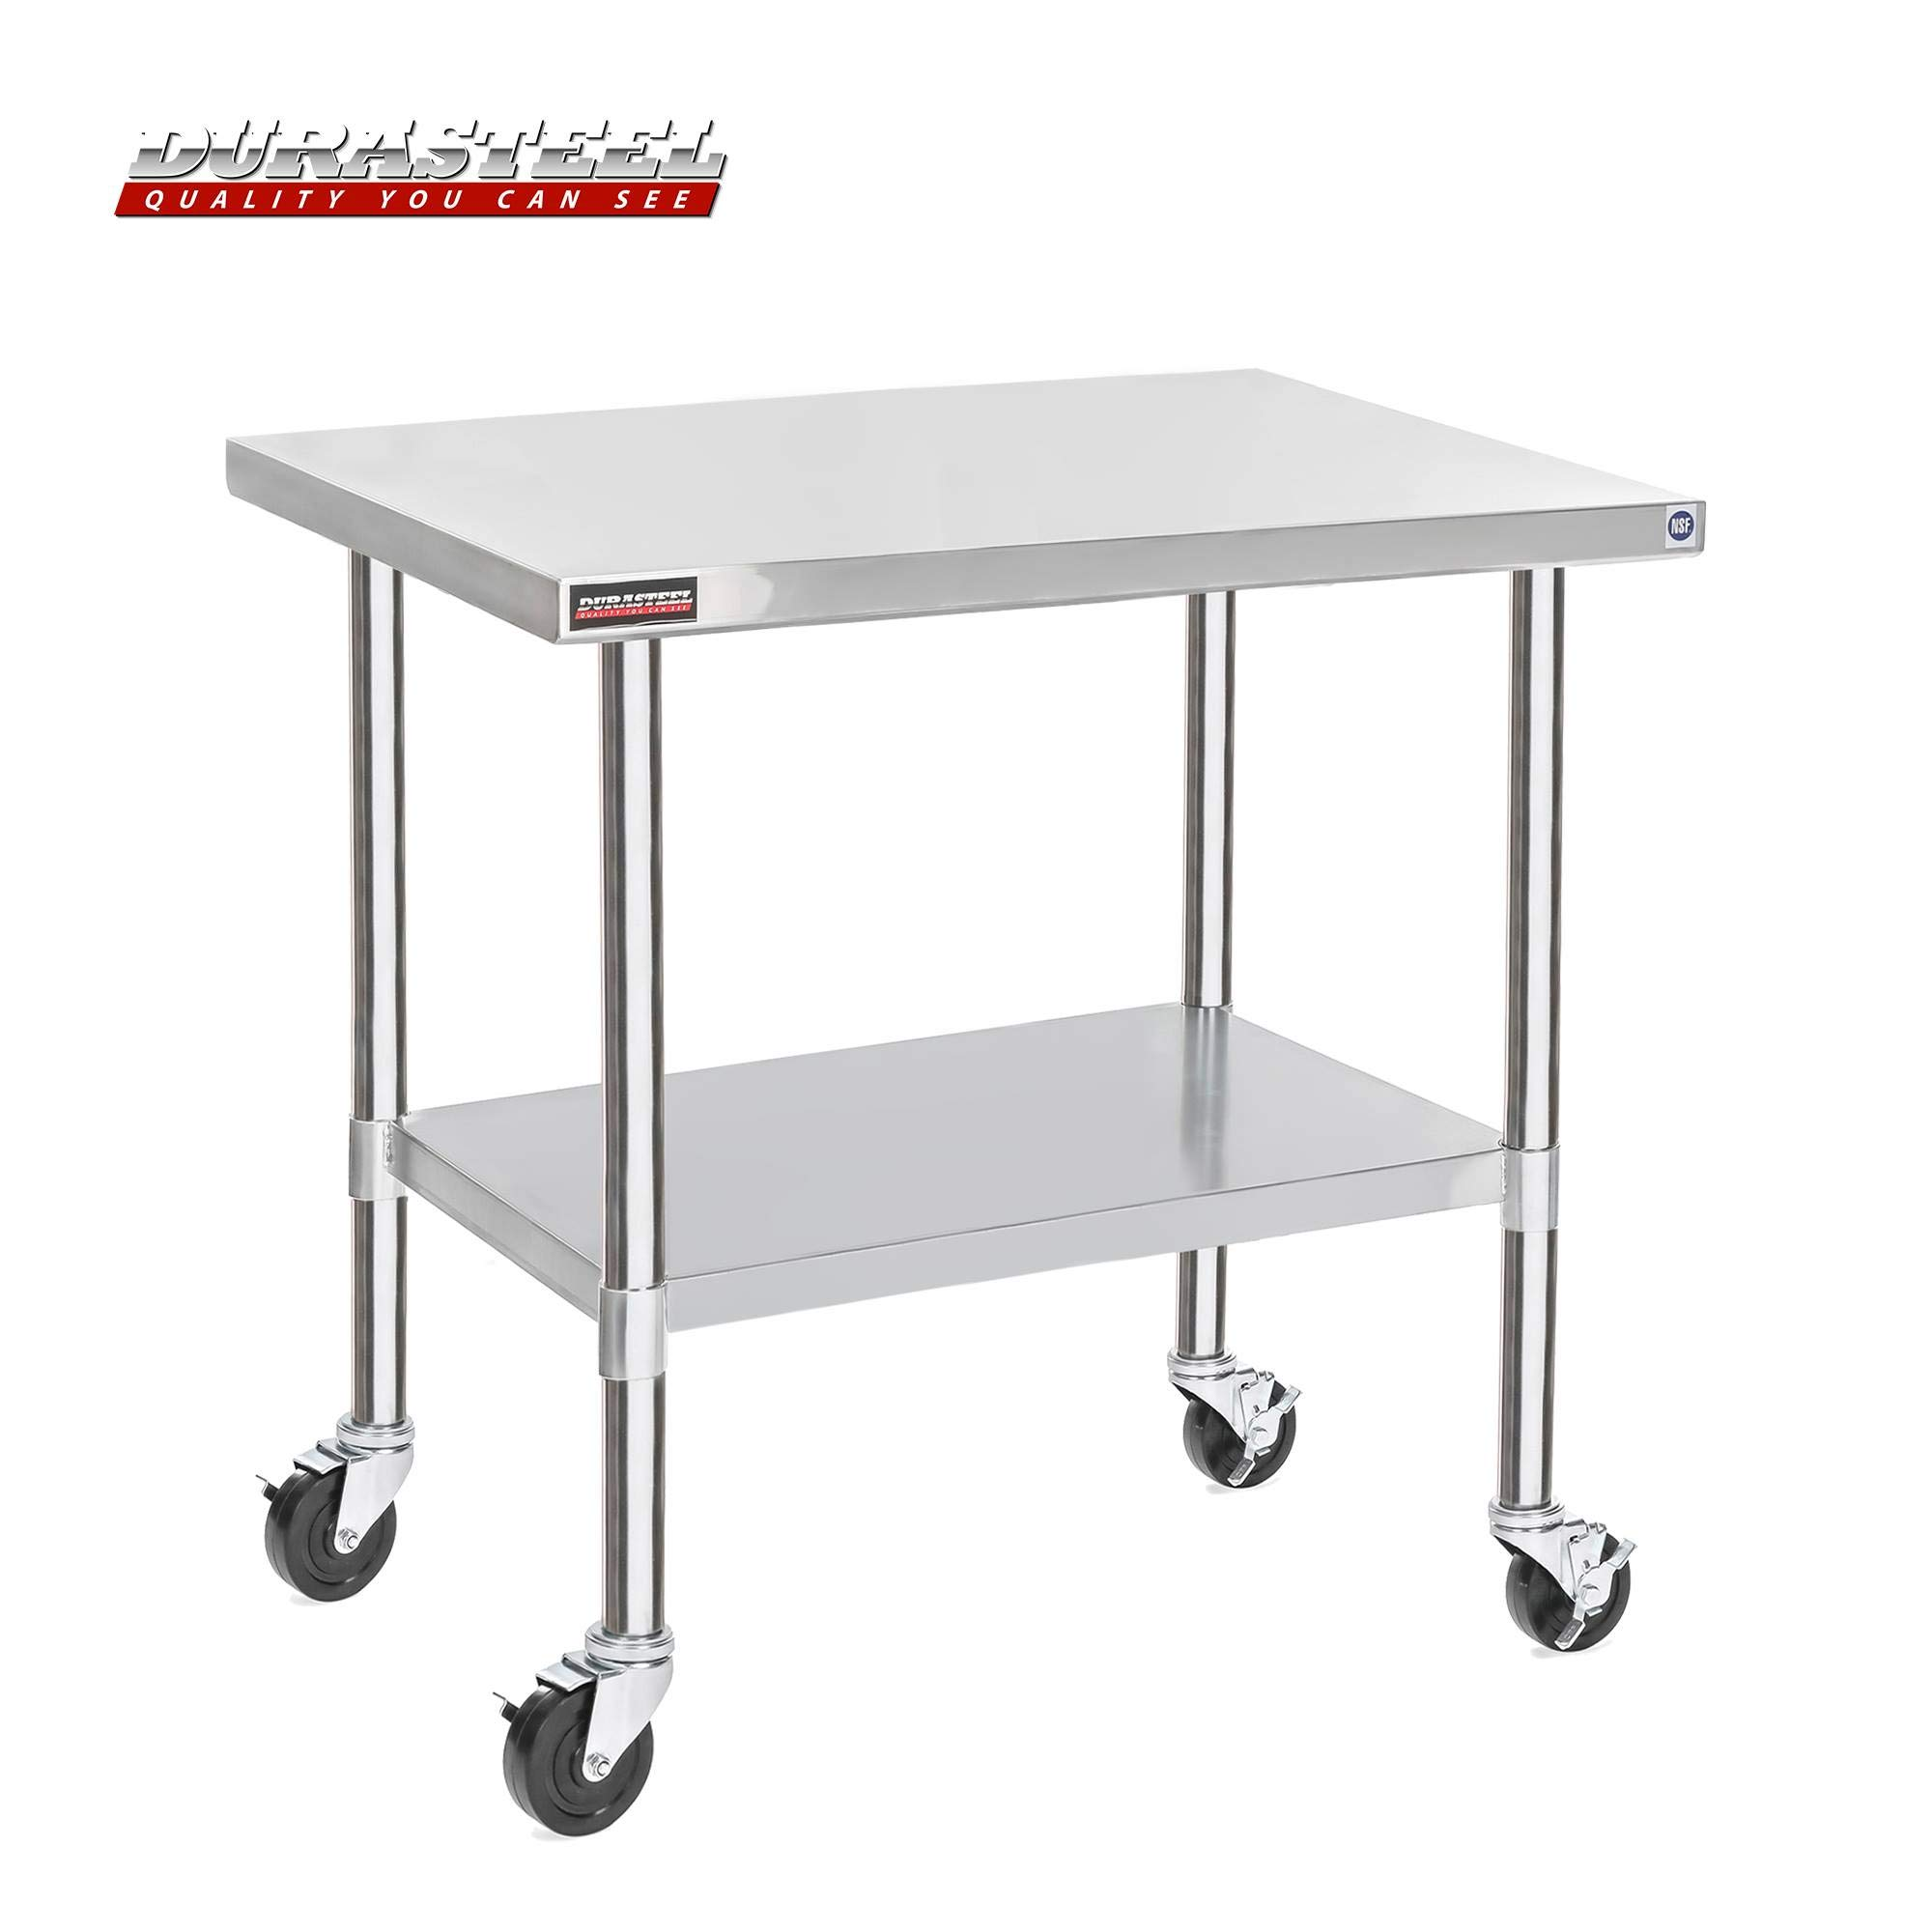 DuraSteel Stainless Steel Work Table 30'' x 48'' x 34'' Height w/ 4 Caster Wheels - Food Prep Commercial Grade Worktable - NSF Certified - Good for Restaurant, Business, Warehouse, Home, Kitchen, Garage